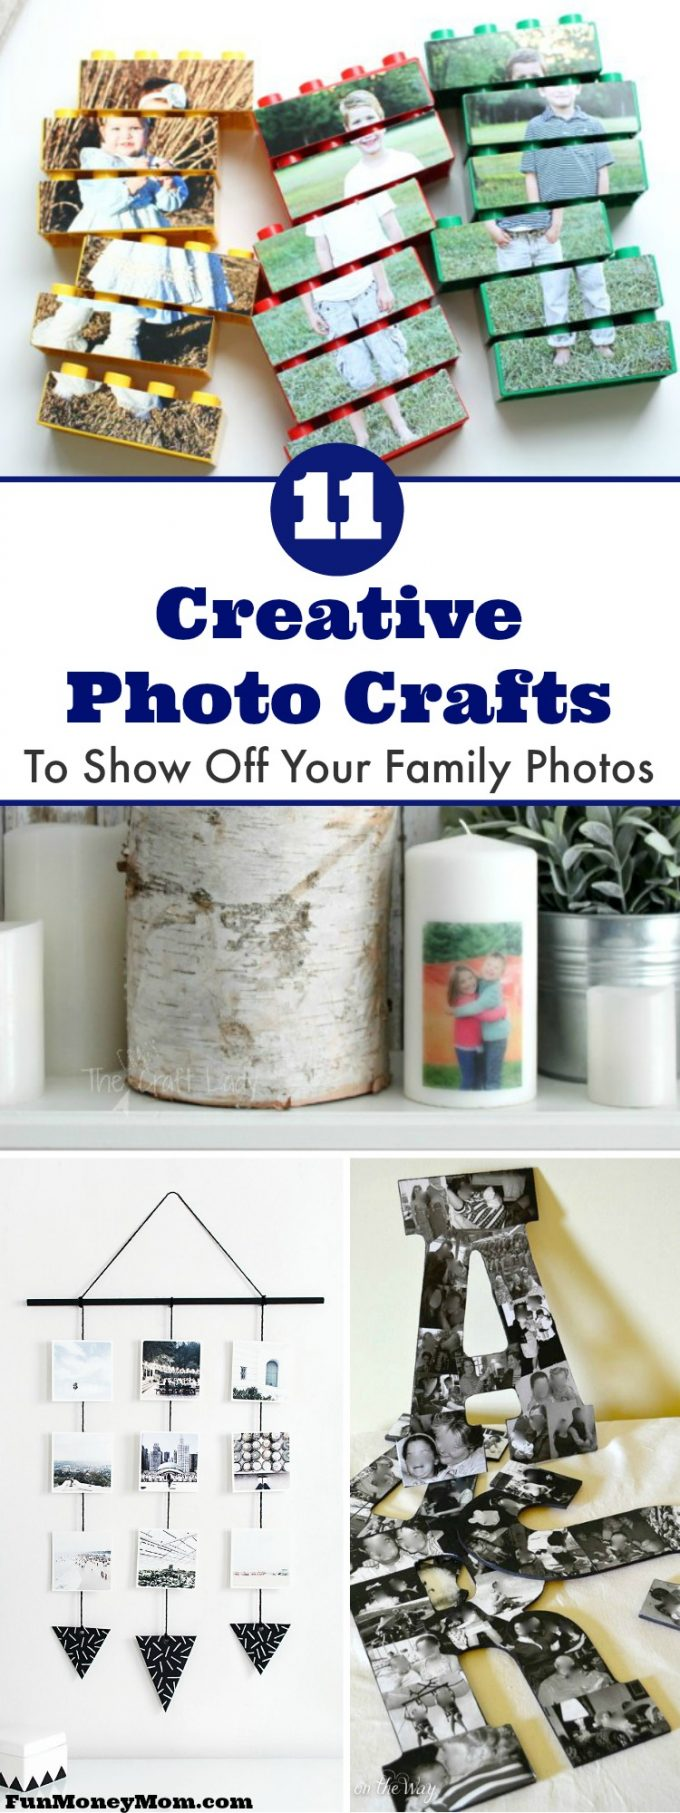 Don't hide your family photos in an album. You can easily display your photos with these creative photo crafts.